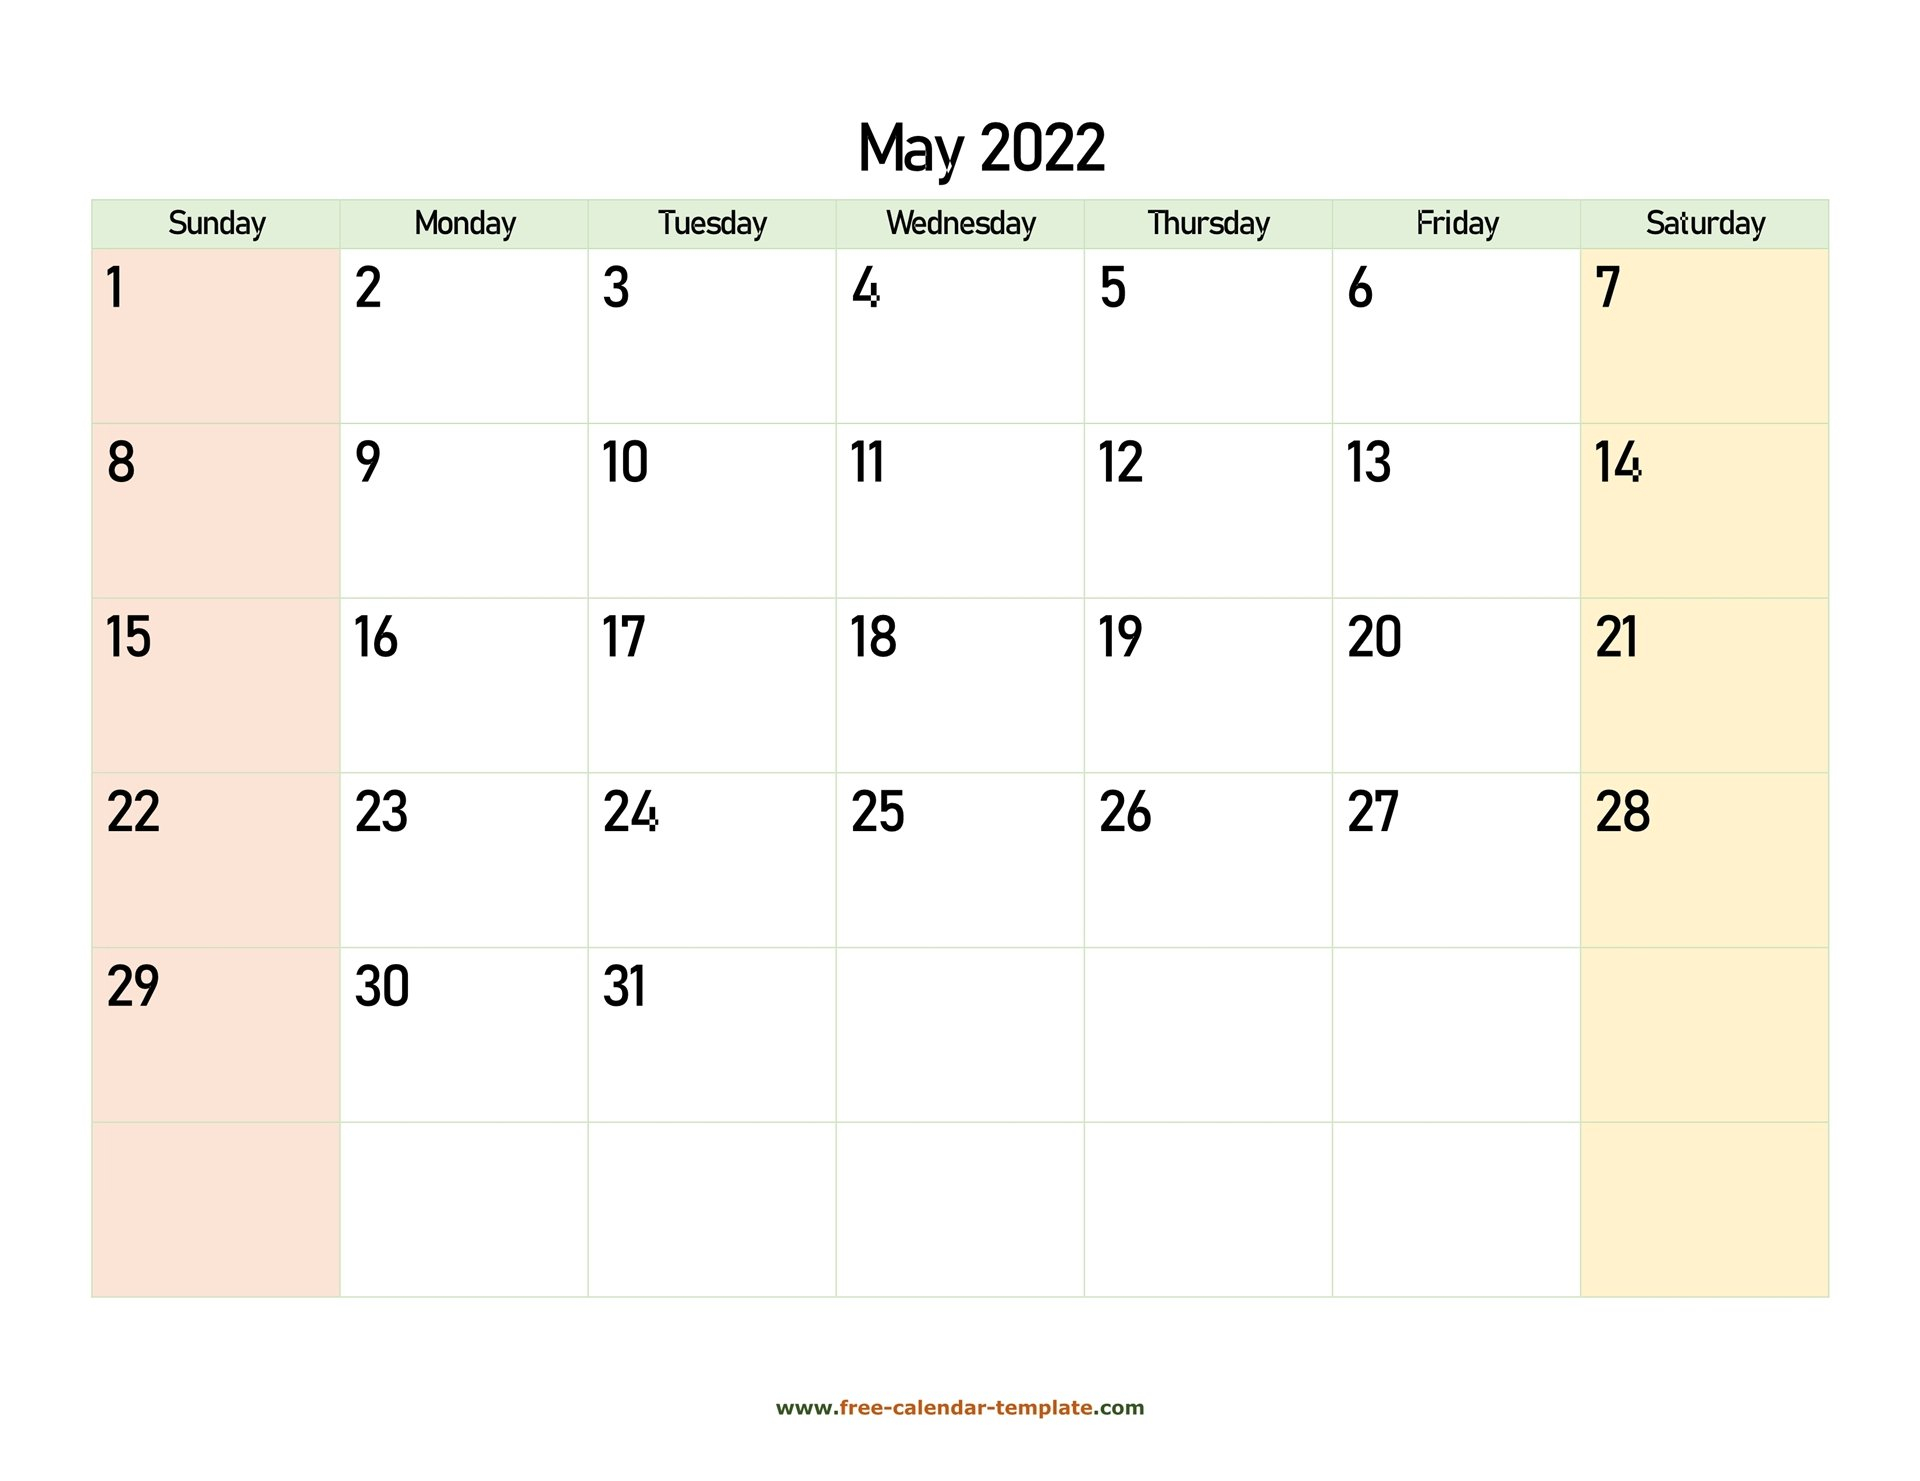 May 2022 Calendar Printable With Coloring On Weekend for May 2022 Calendar Printable